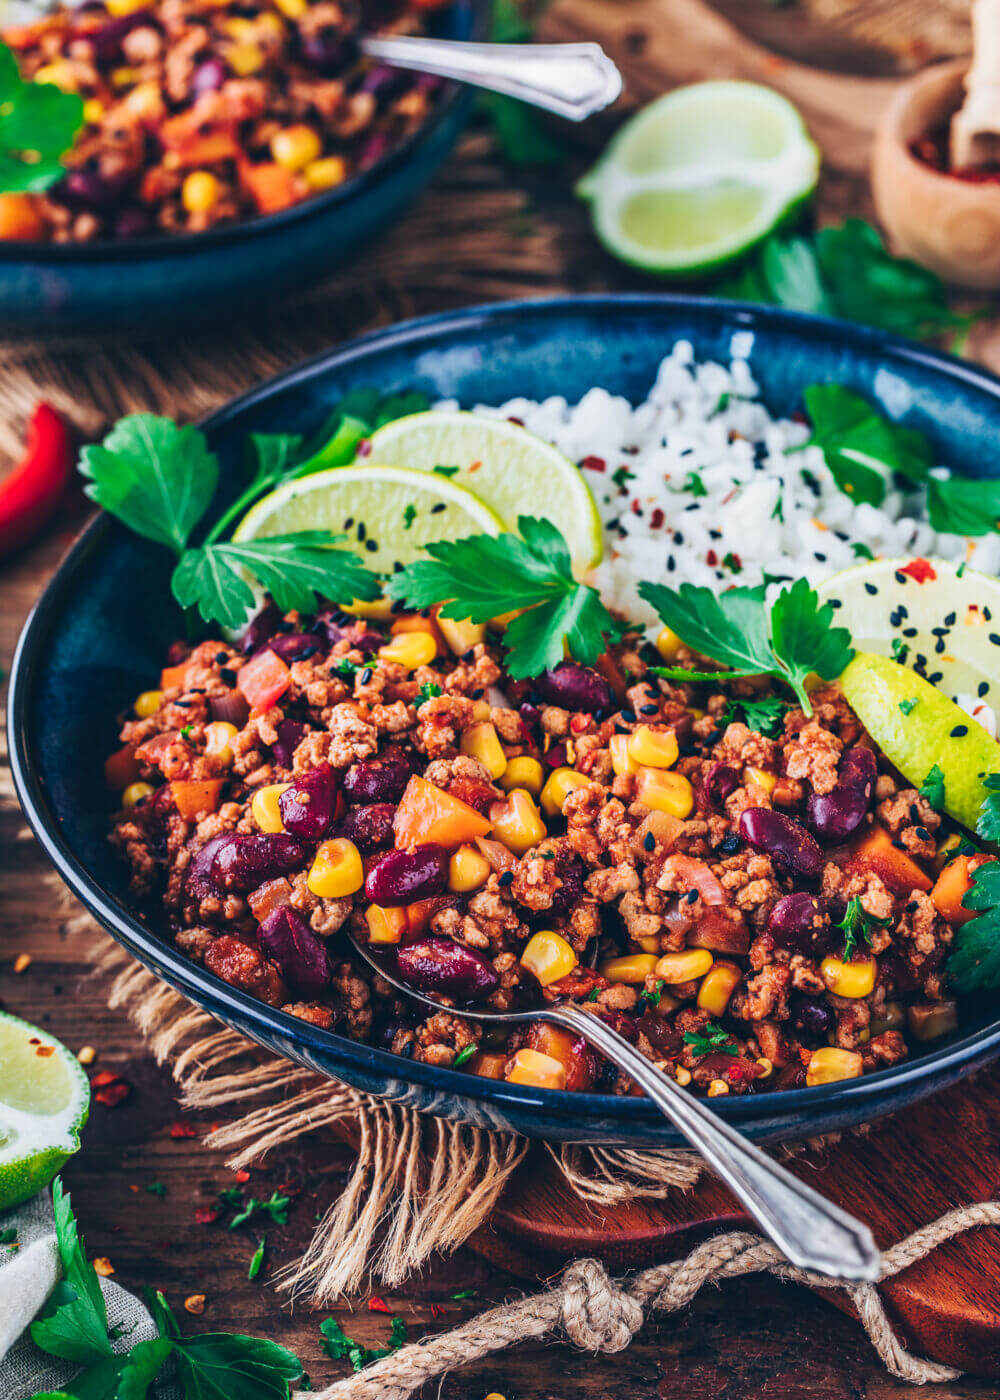 Vegan Chili Sin Carne with beans, corn and vegan meat, served with rice